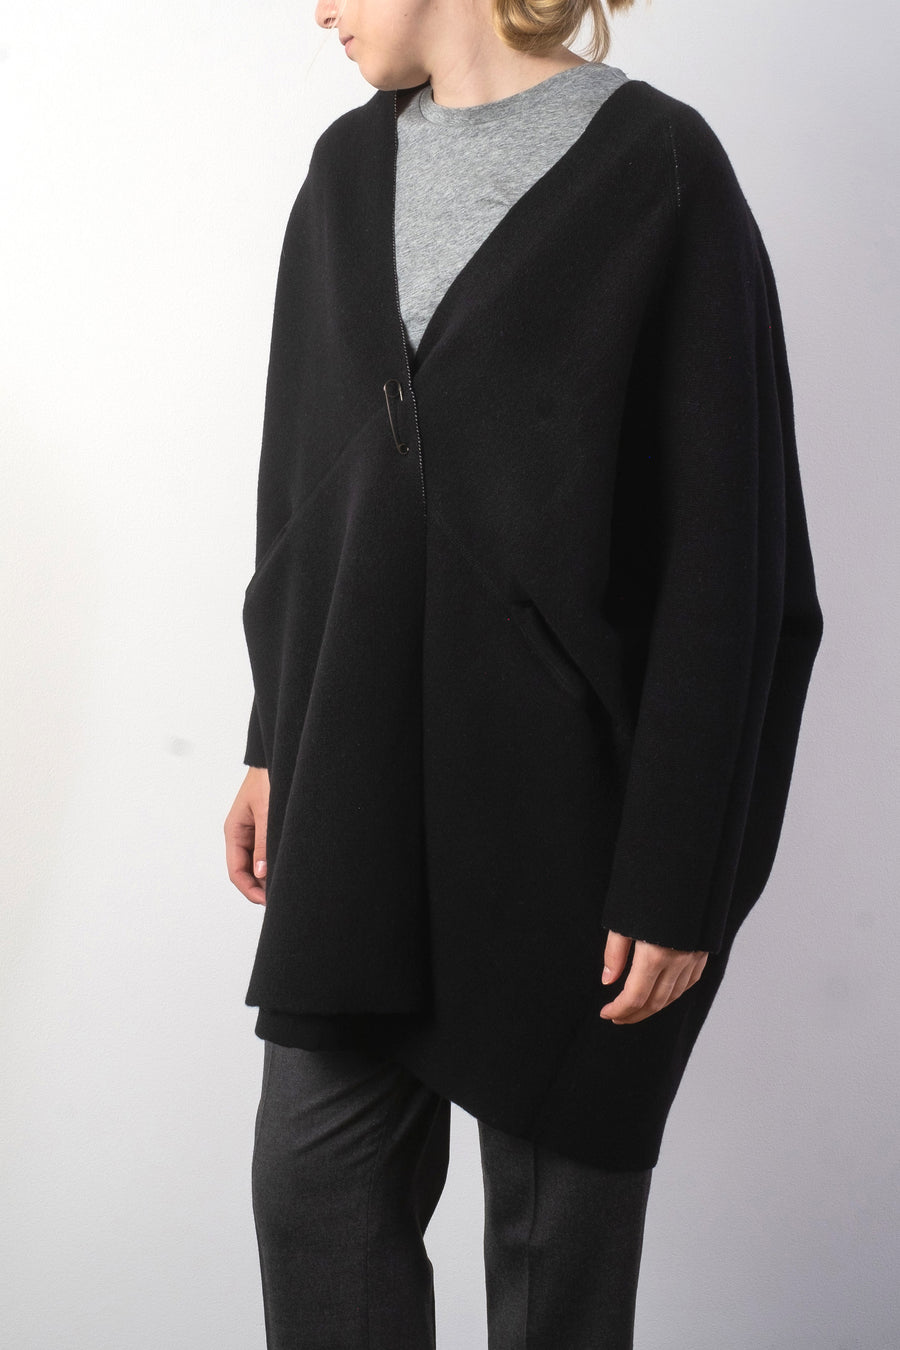 oyuna reversible pod jacket in black ivory wool cashmere cardigan noodle stories